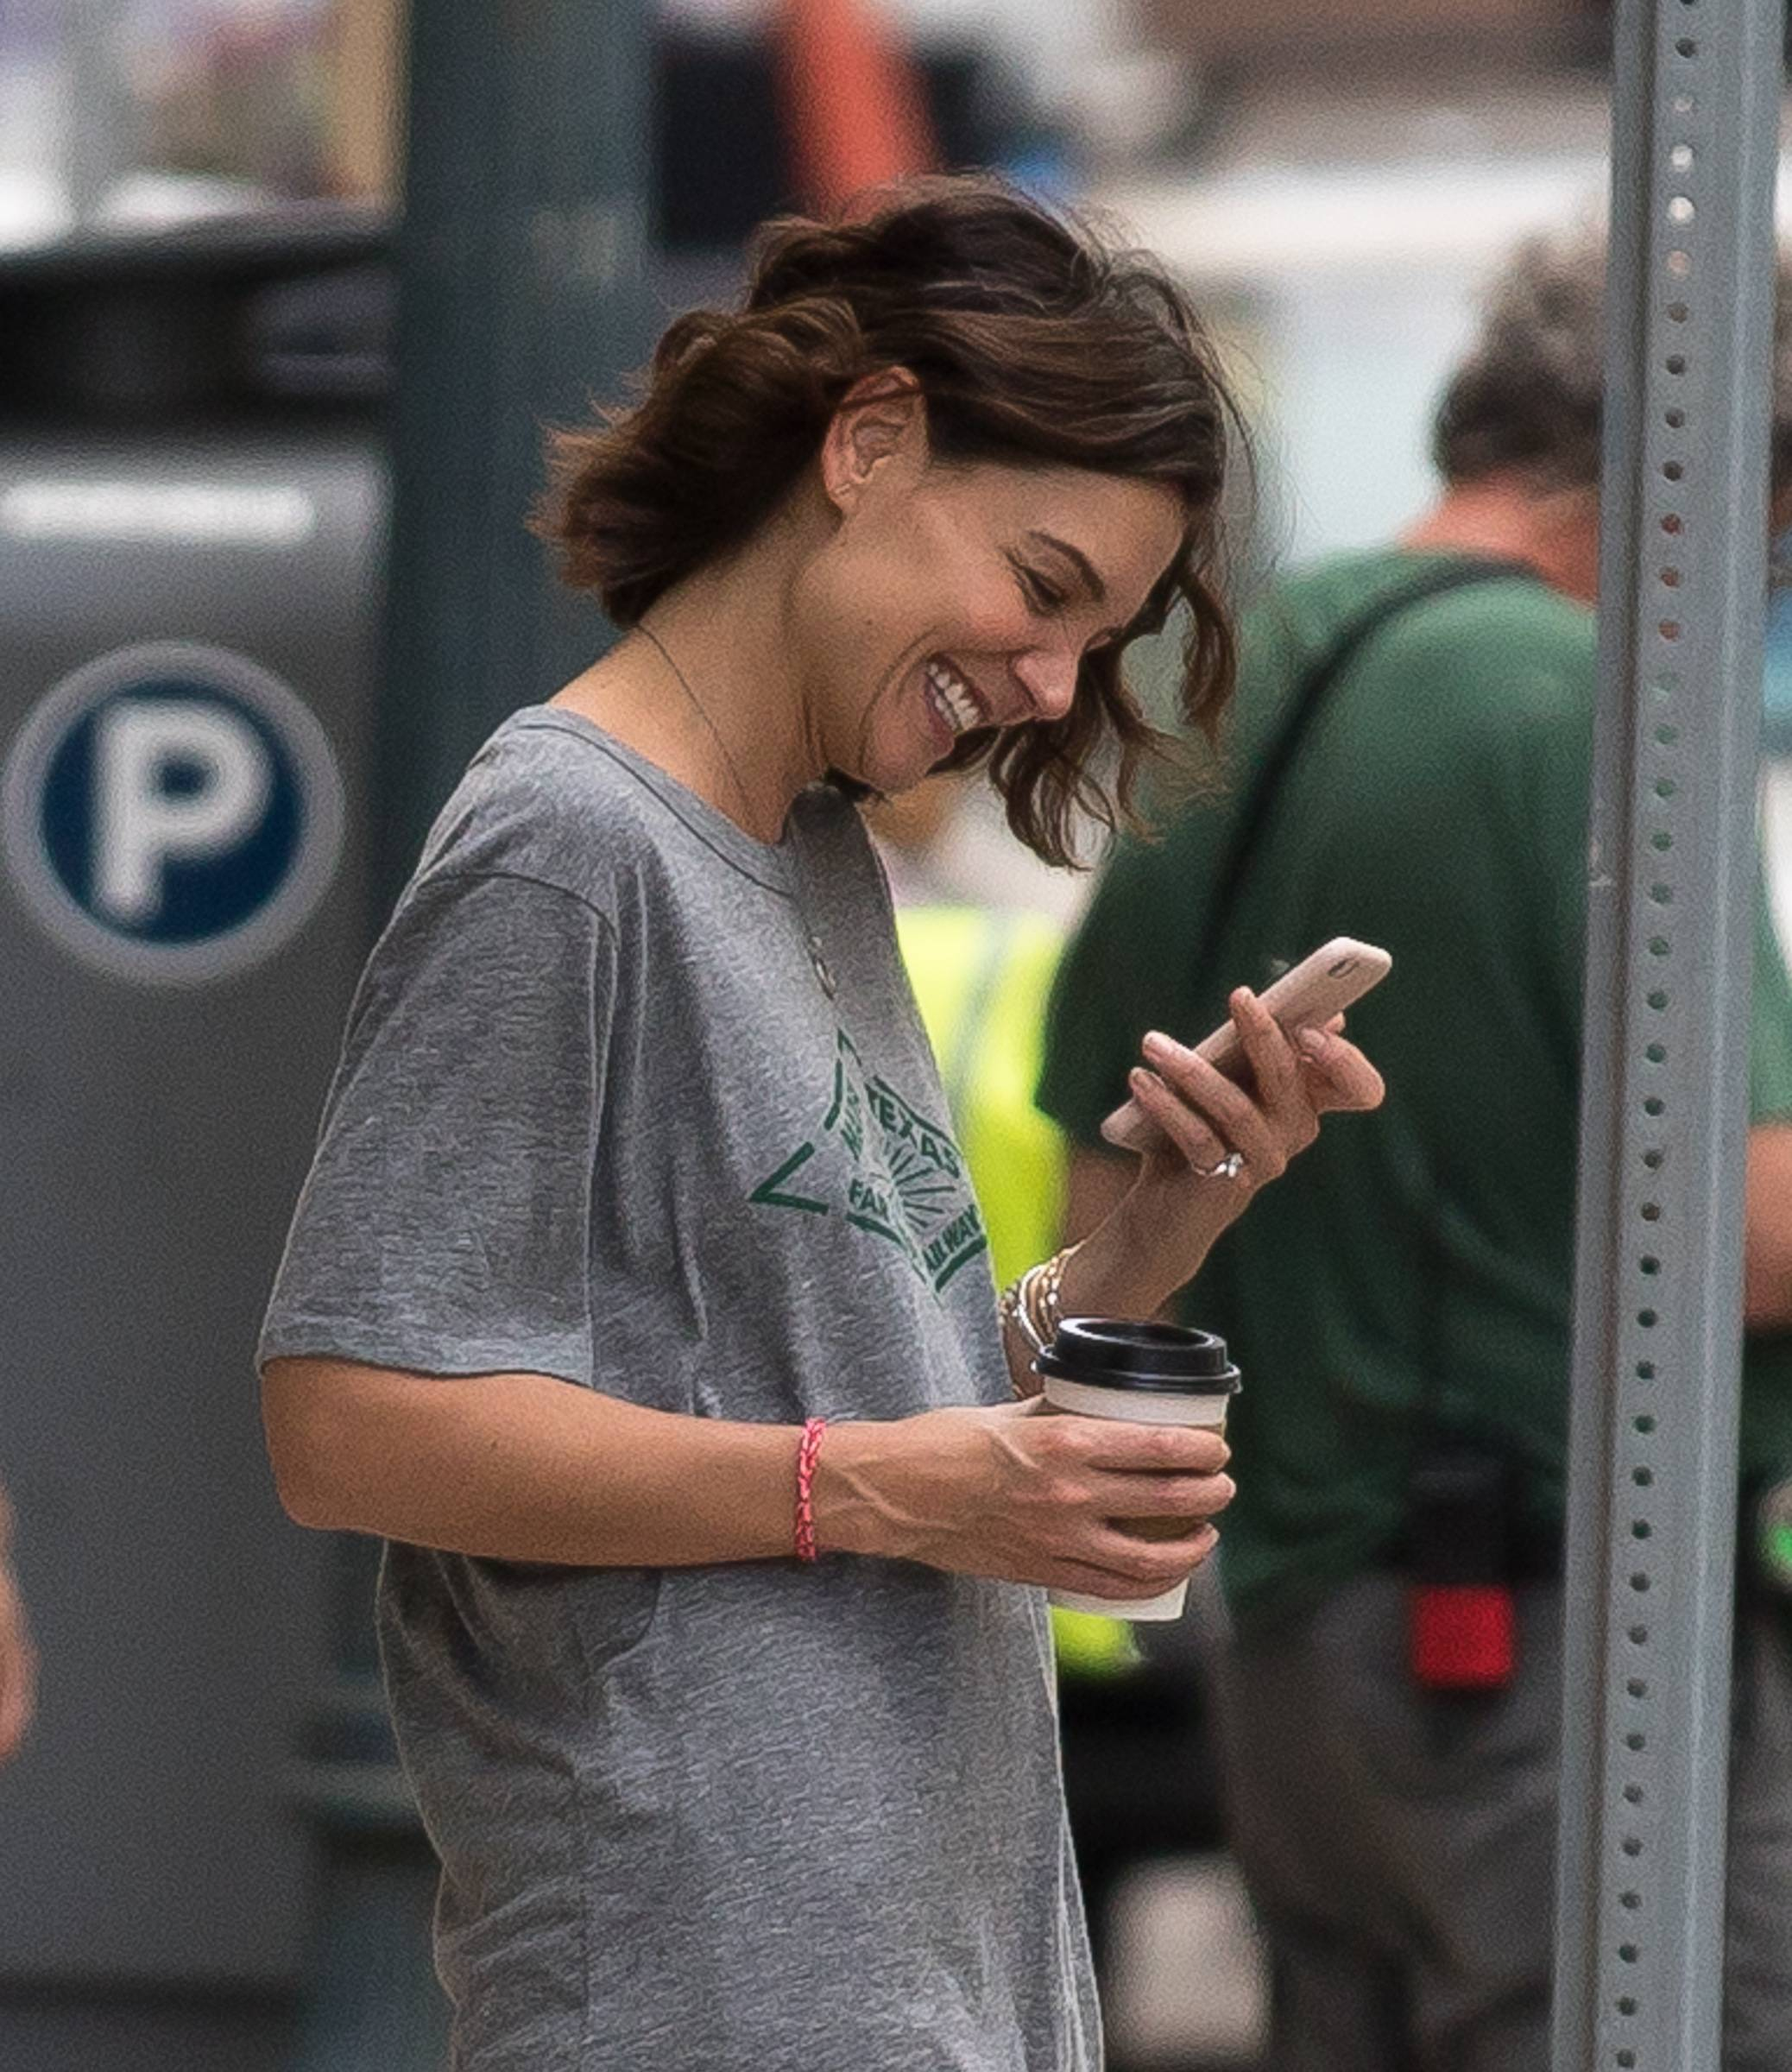 Katie Holmes - Now that Jamie Foxx and his boo Katie Holmesfinally out and proud, do we hear wedding bells in the near future? Katie was spotted walking around New Orleans with a big smile while wearing a diamond ring on her left pinky. Do you think she was wearing it on her pinky to throw people off the engagement trail? (Photo: Splash News)